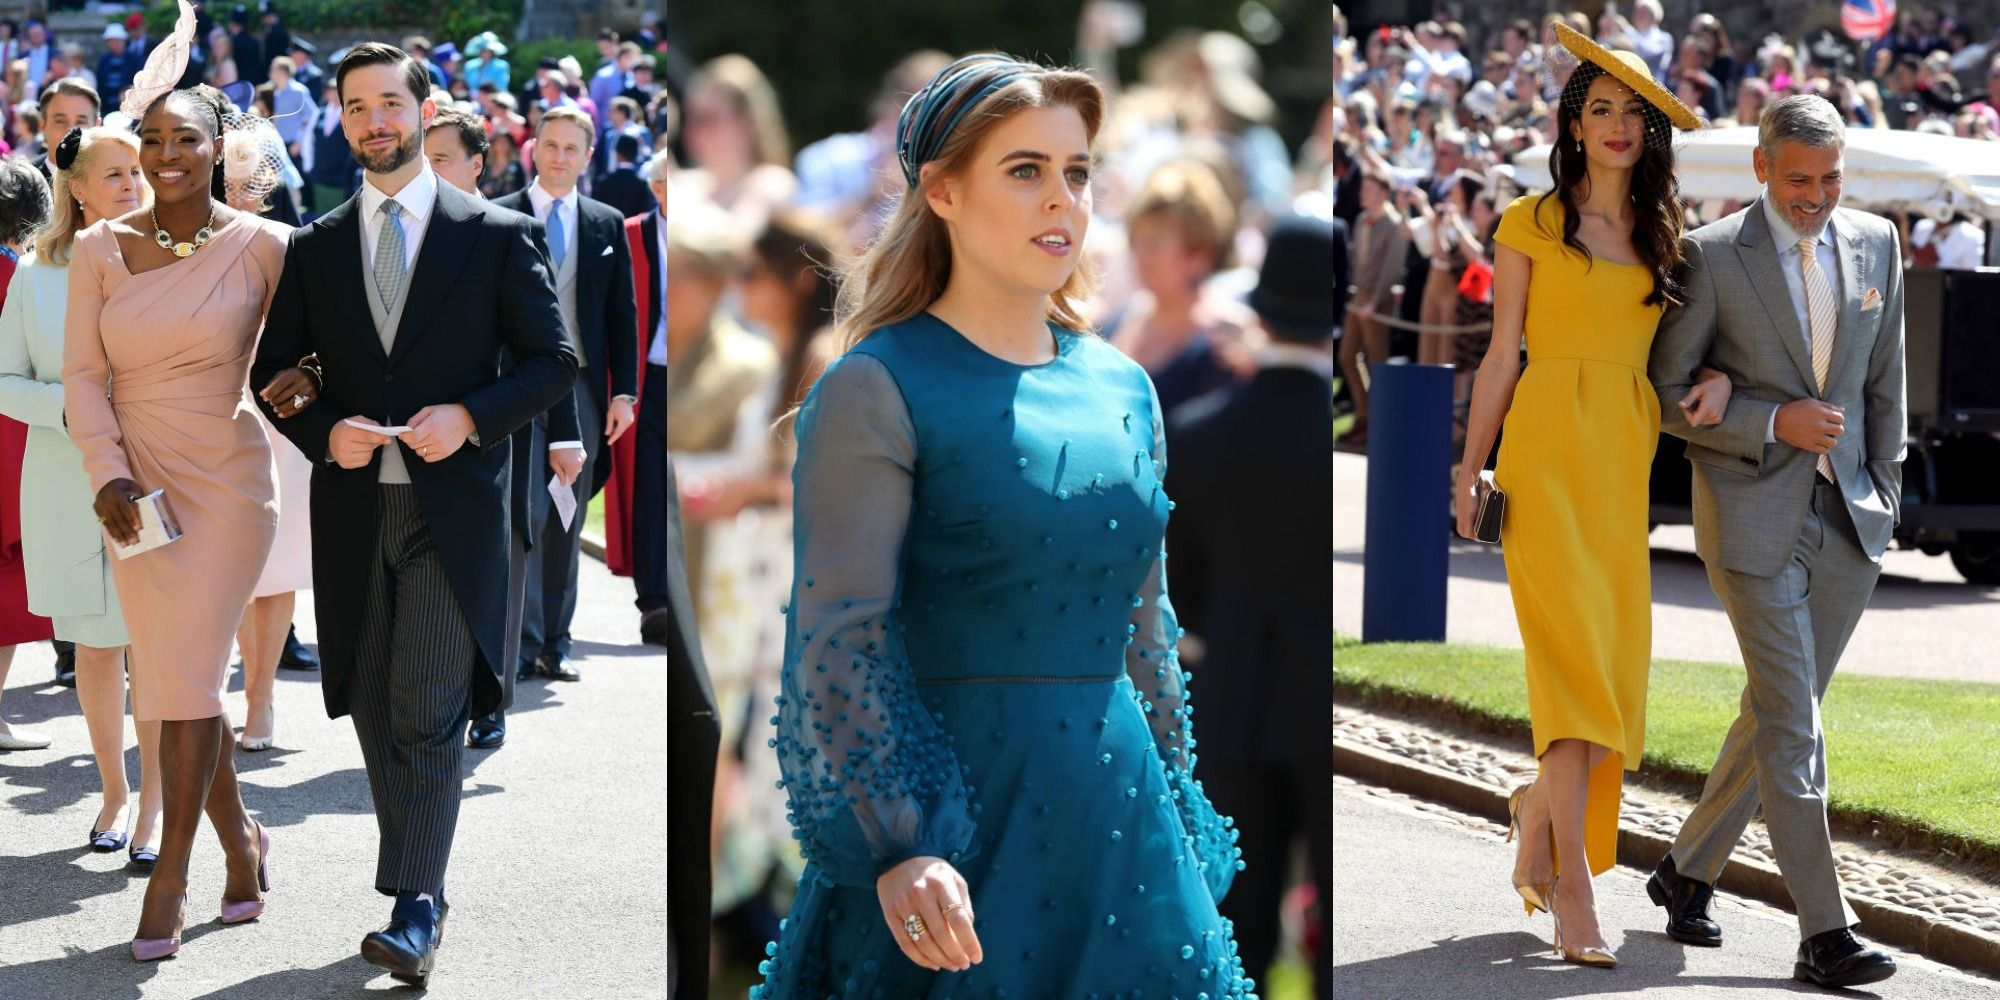 Royal Wedding 2018 Celebrity Guest List Famous Guests At